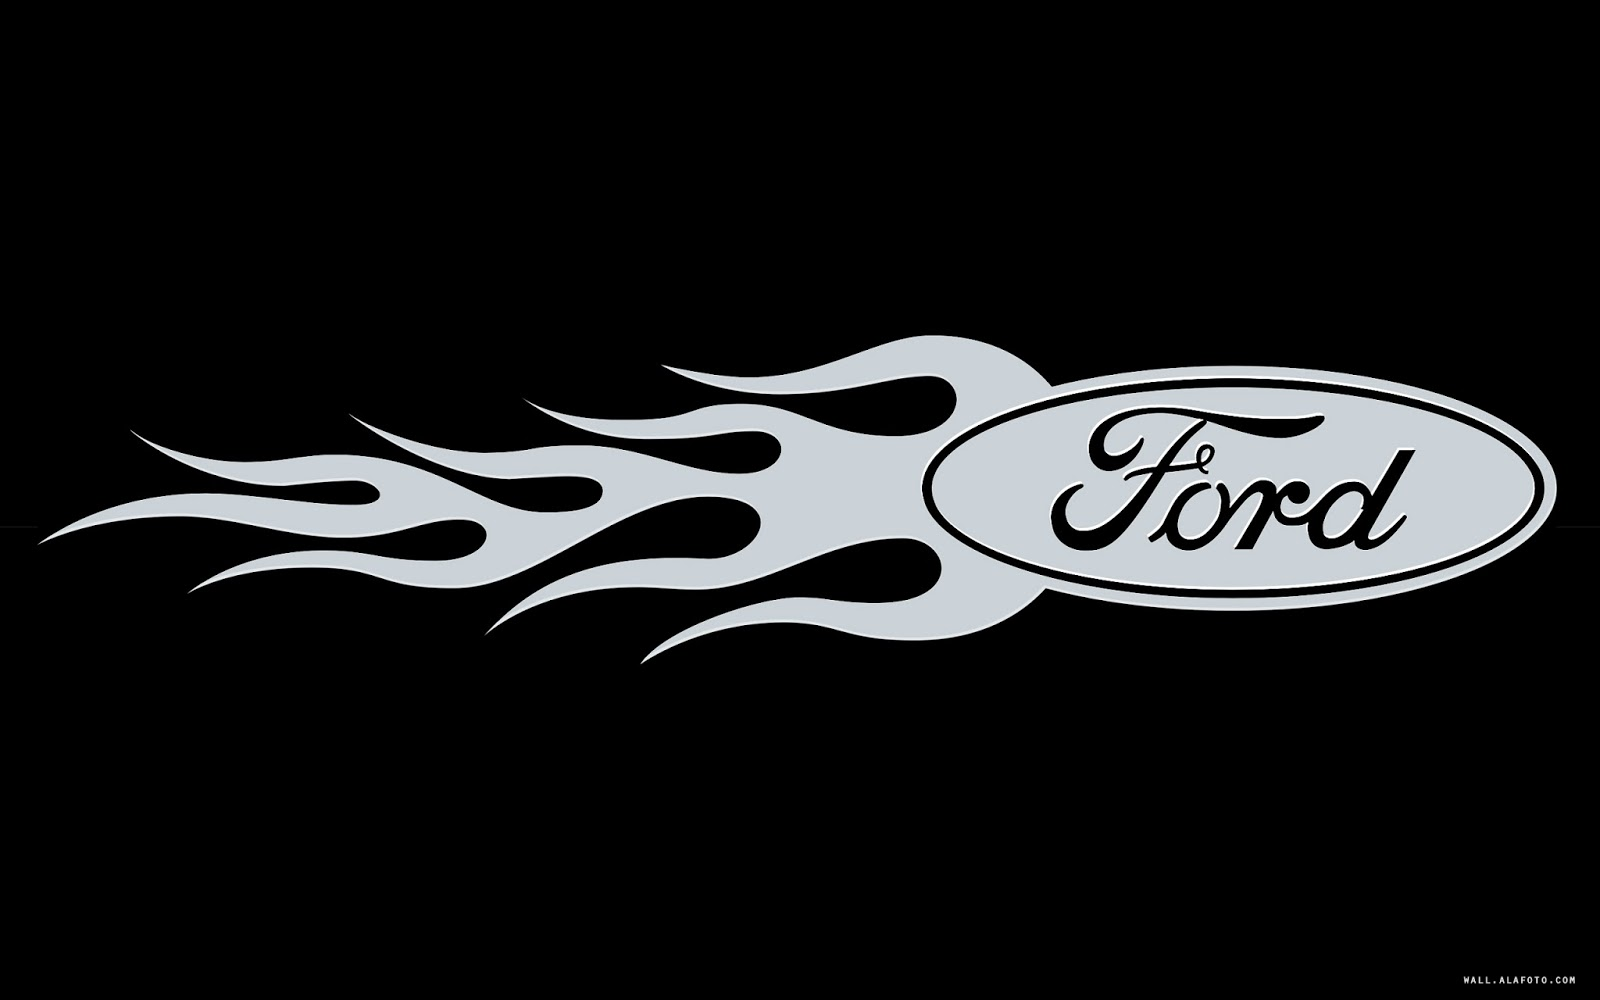 In Loans Ford Logo